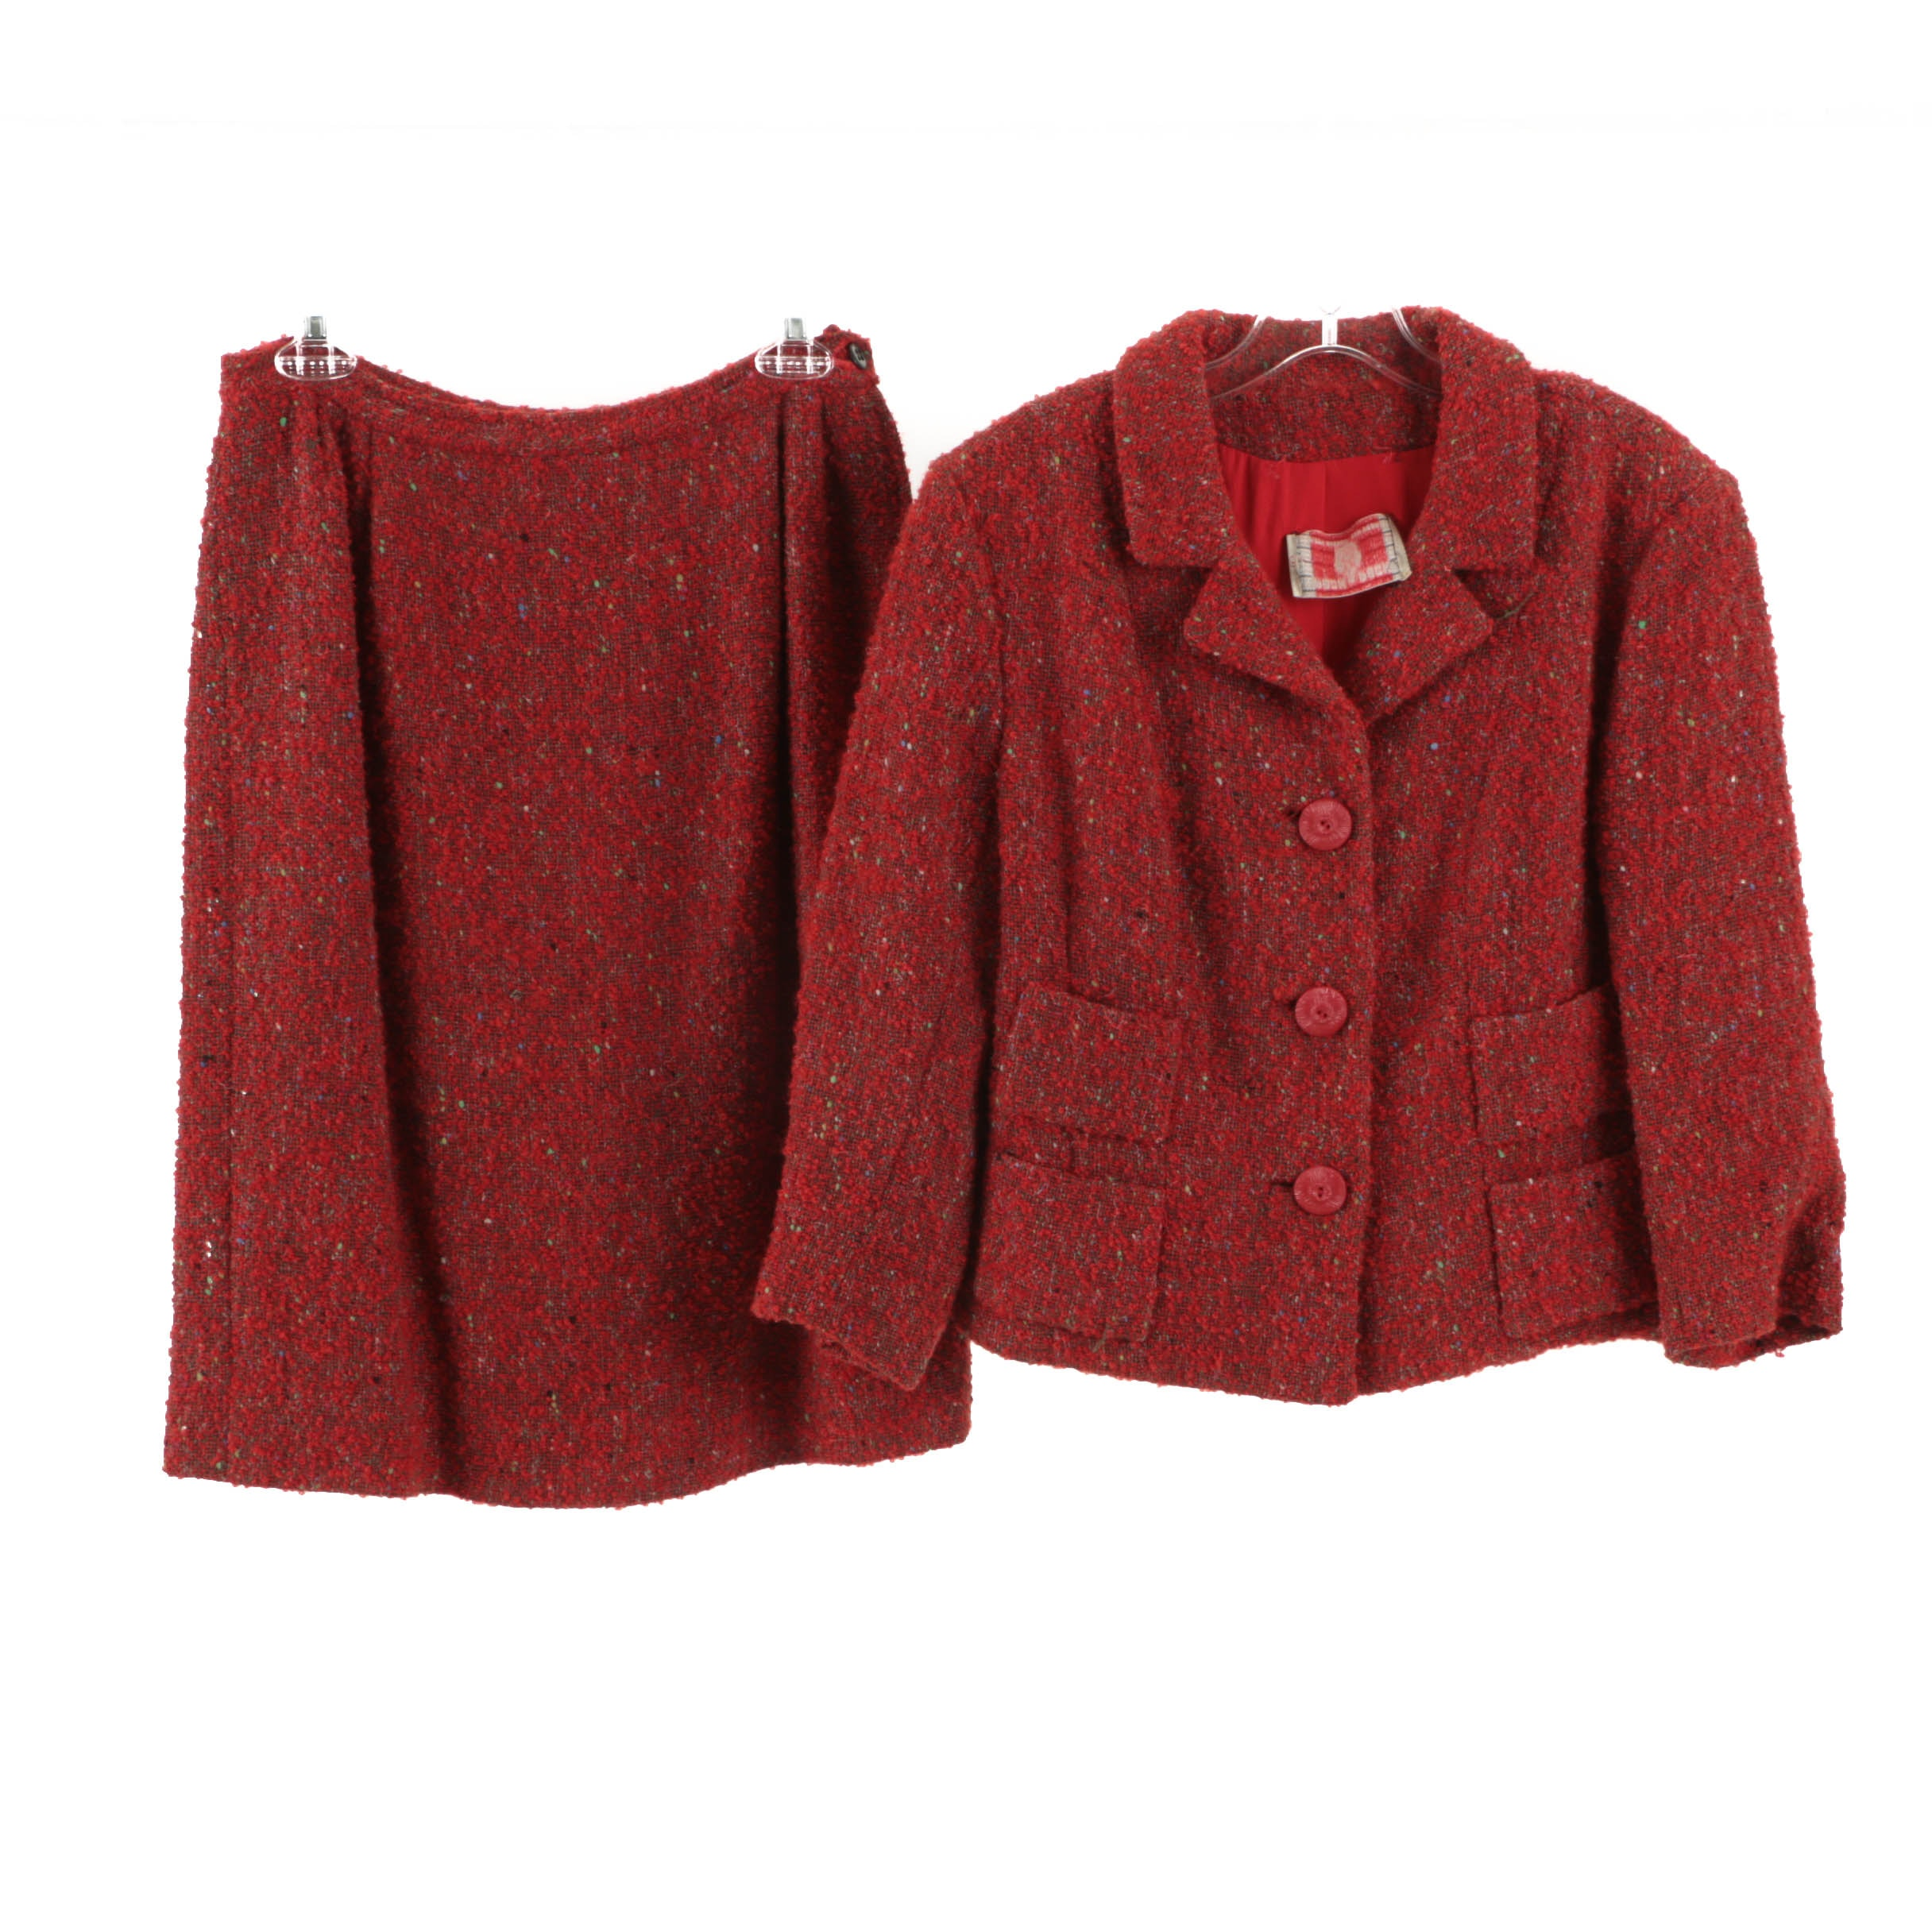 1960s Vintage Peck & Peck Red Bouclé Wool Knit Skirt Suit